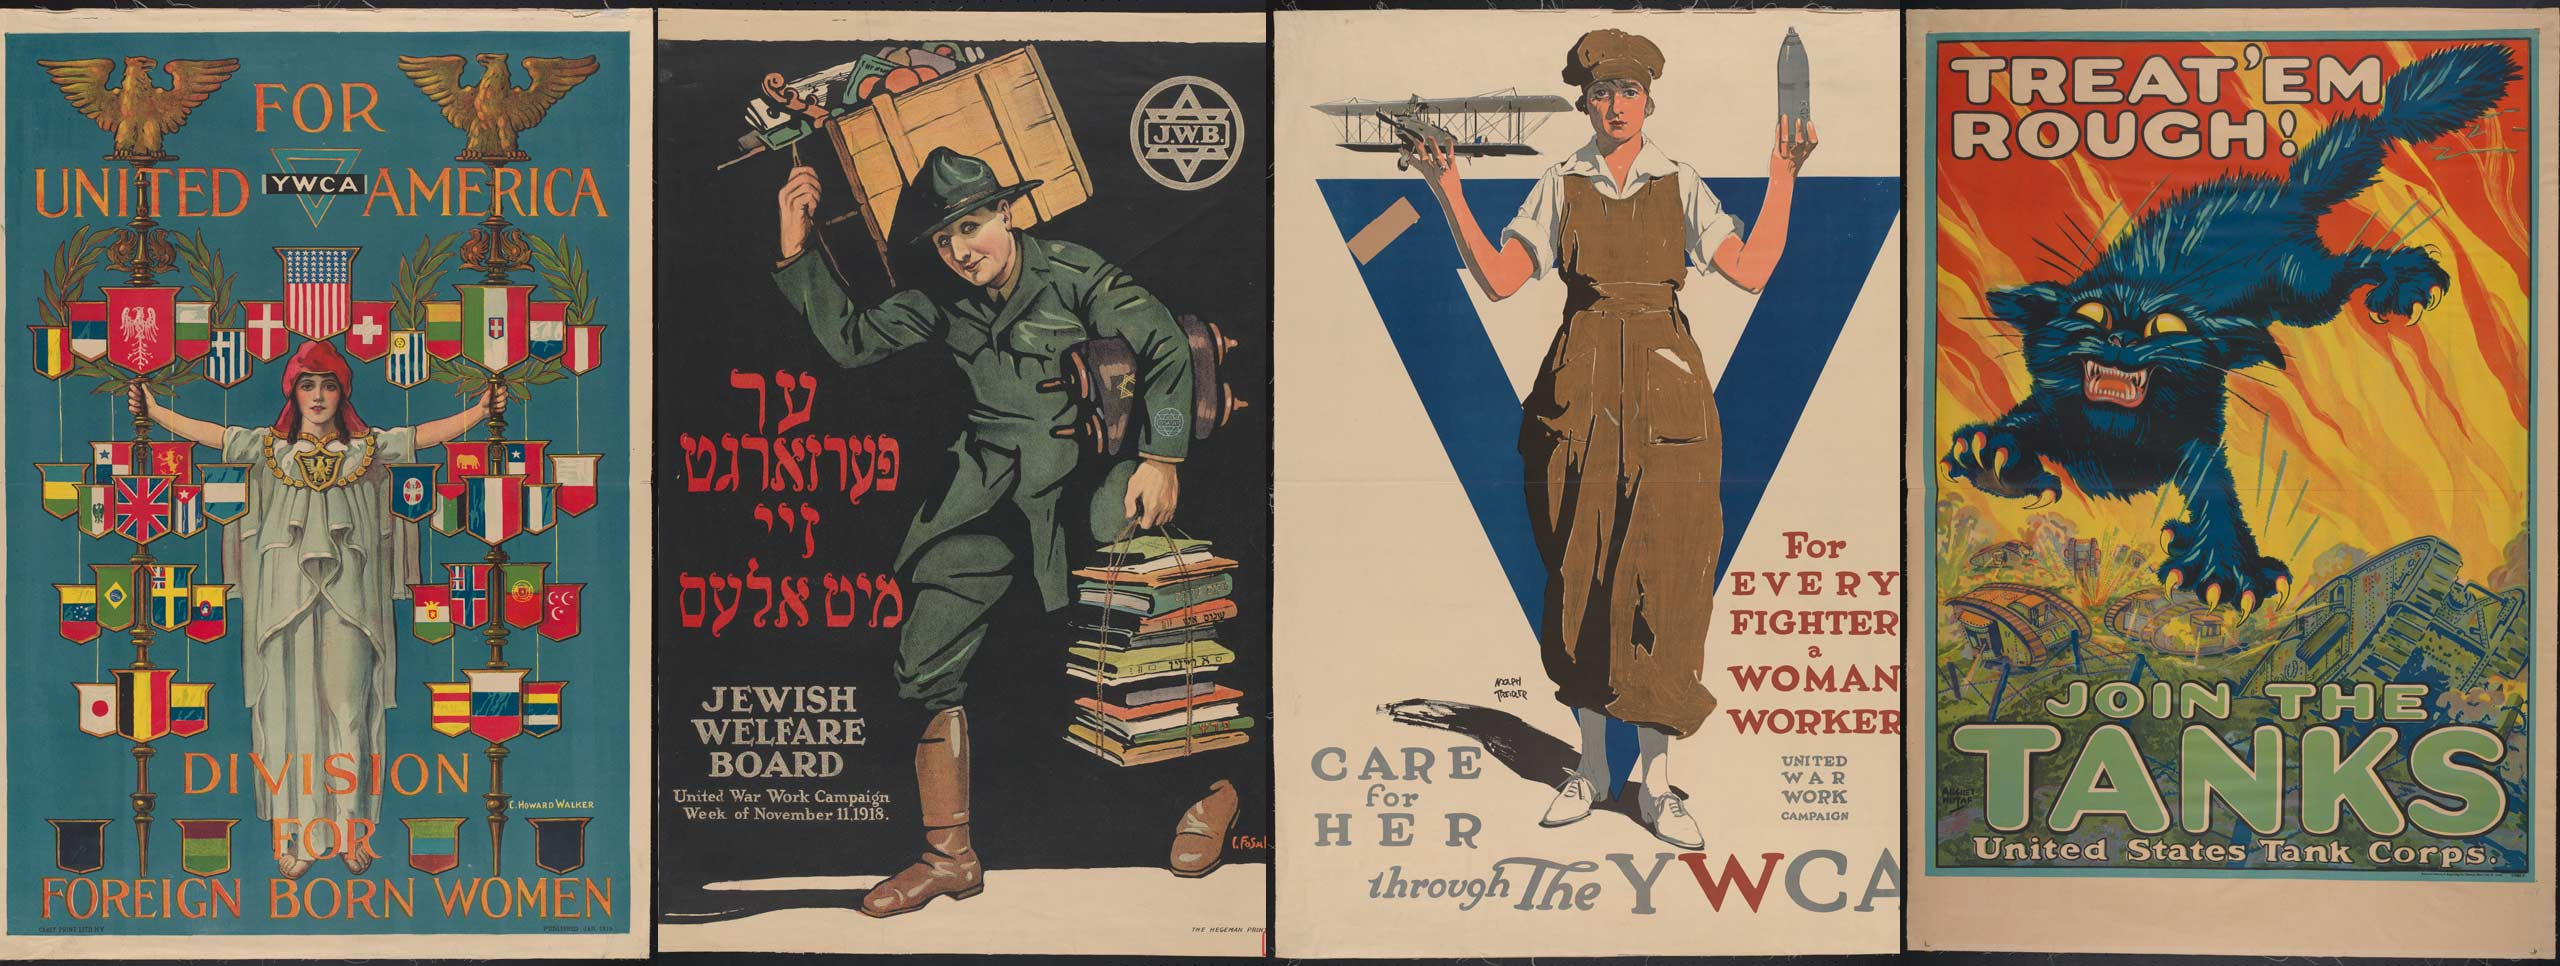 Four WWI posters that encourage different groups to participate in the war effort through working, enlistment, and more